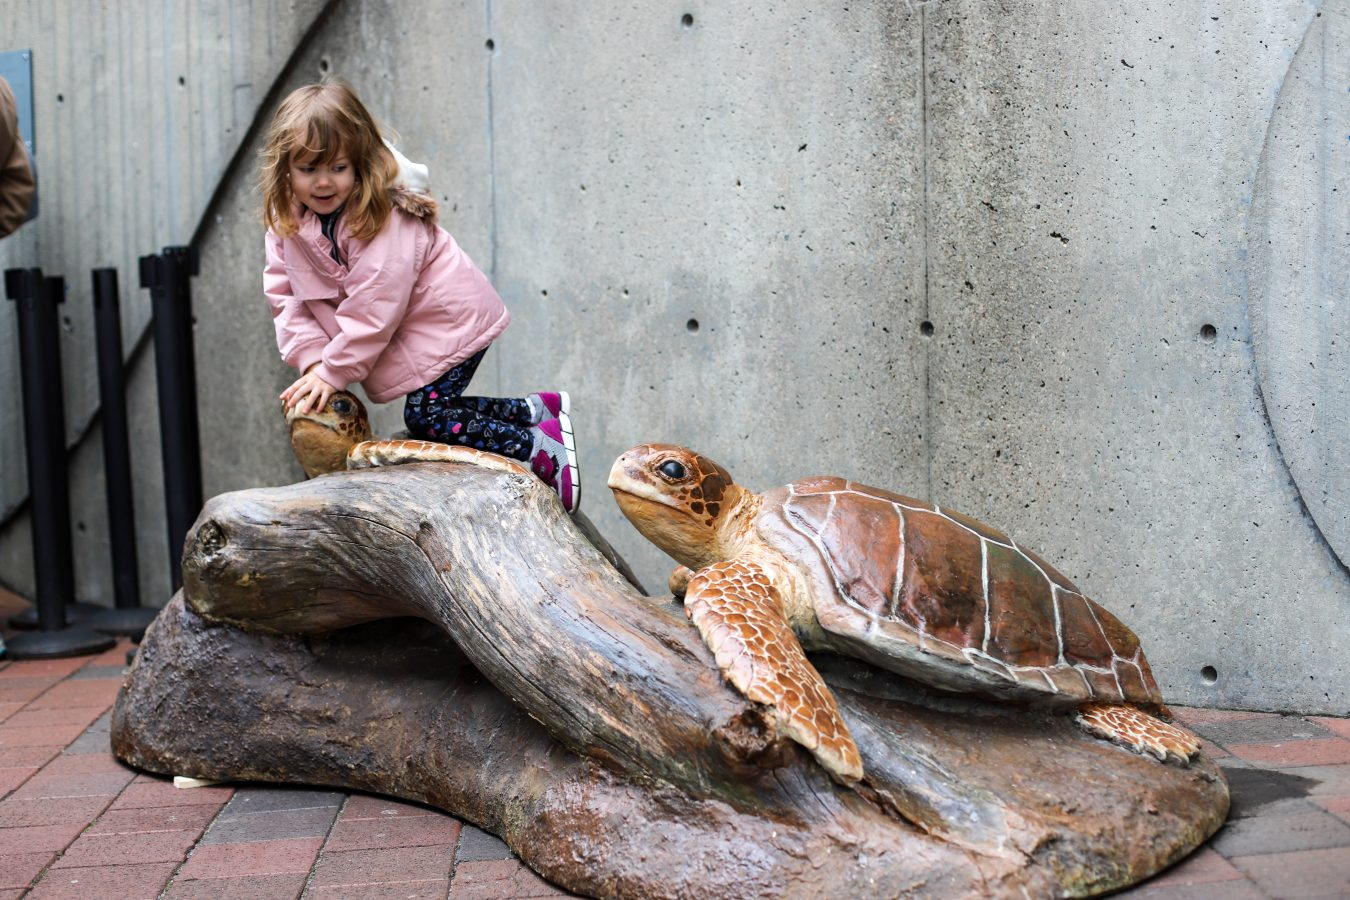 a girl looks back at a turtle sculpture while see climbs on the other sculpture in the Aquarium's plaza